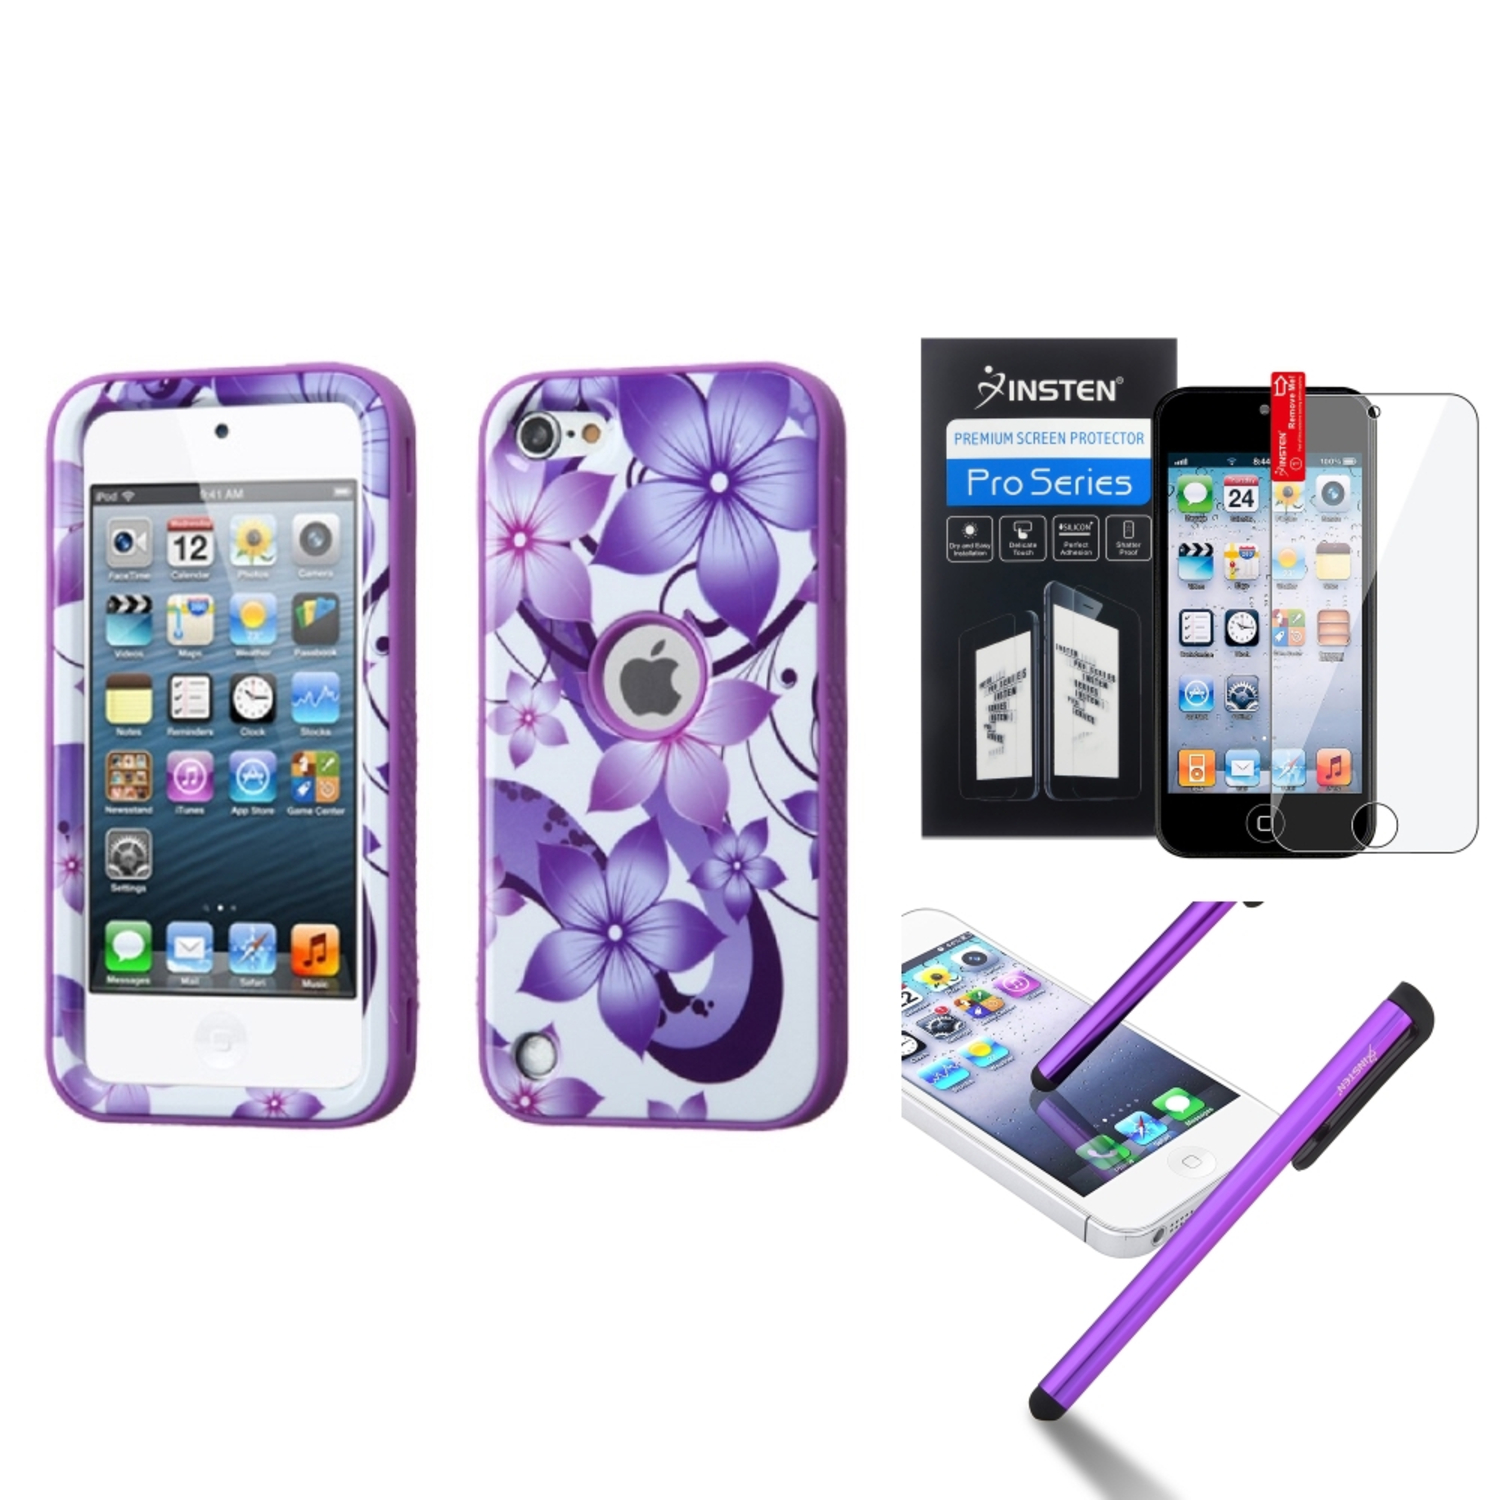 Insten For iPod Touch 6th 6G 6 5th 5G 5 Verge Hybrid Case Grip+Pen+Protector Purple Hibiscus Flower/Purple